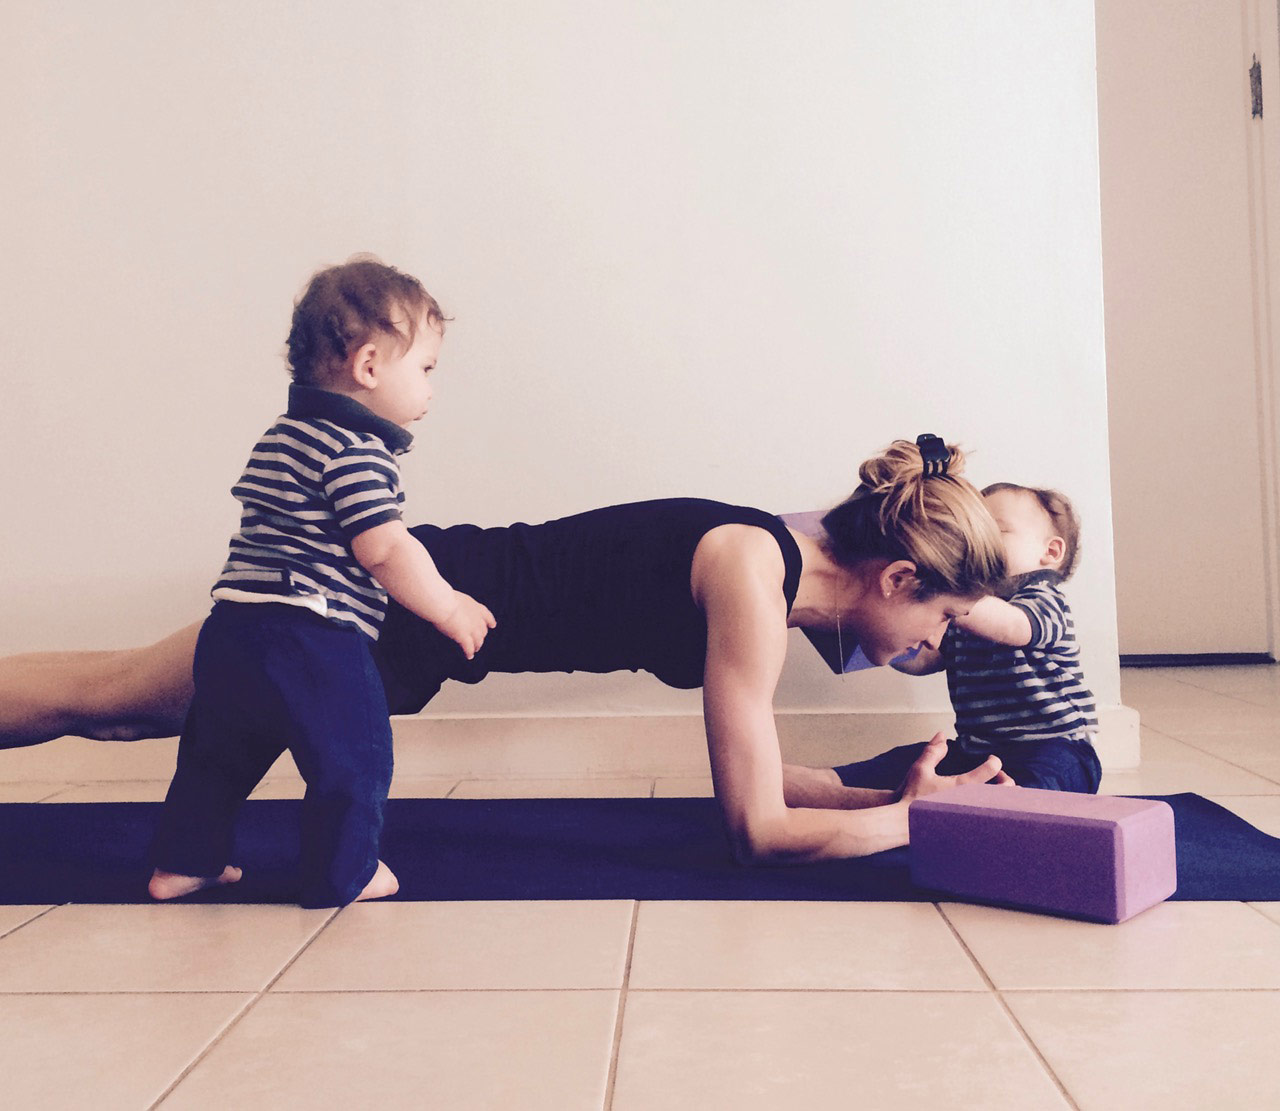 goldie oren with a strong core does yoga with babies